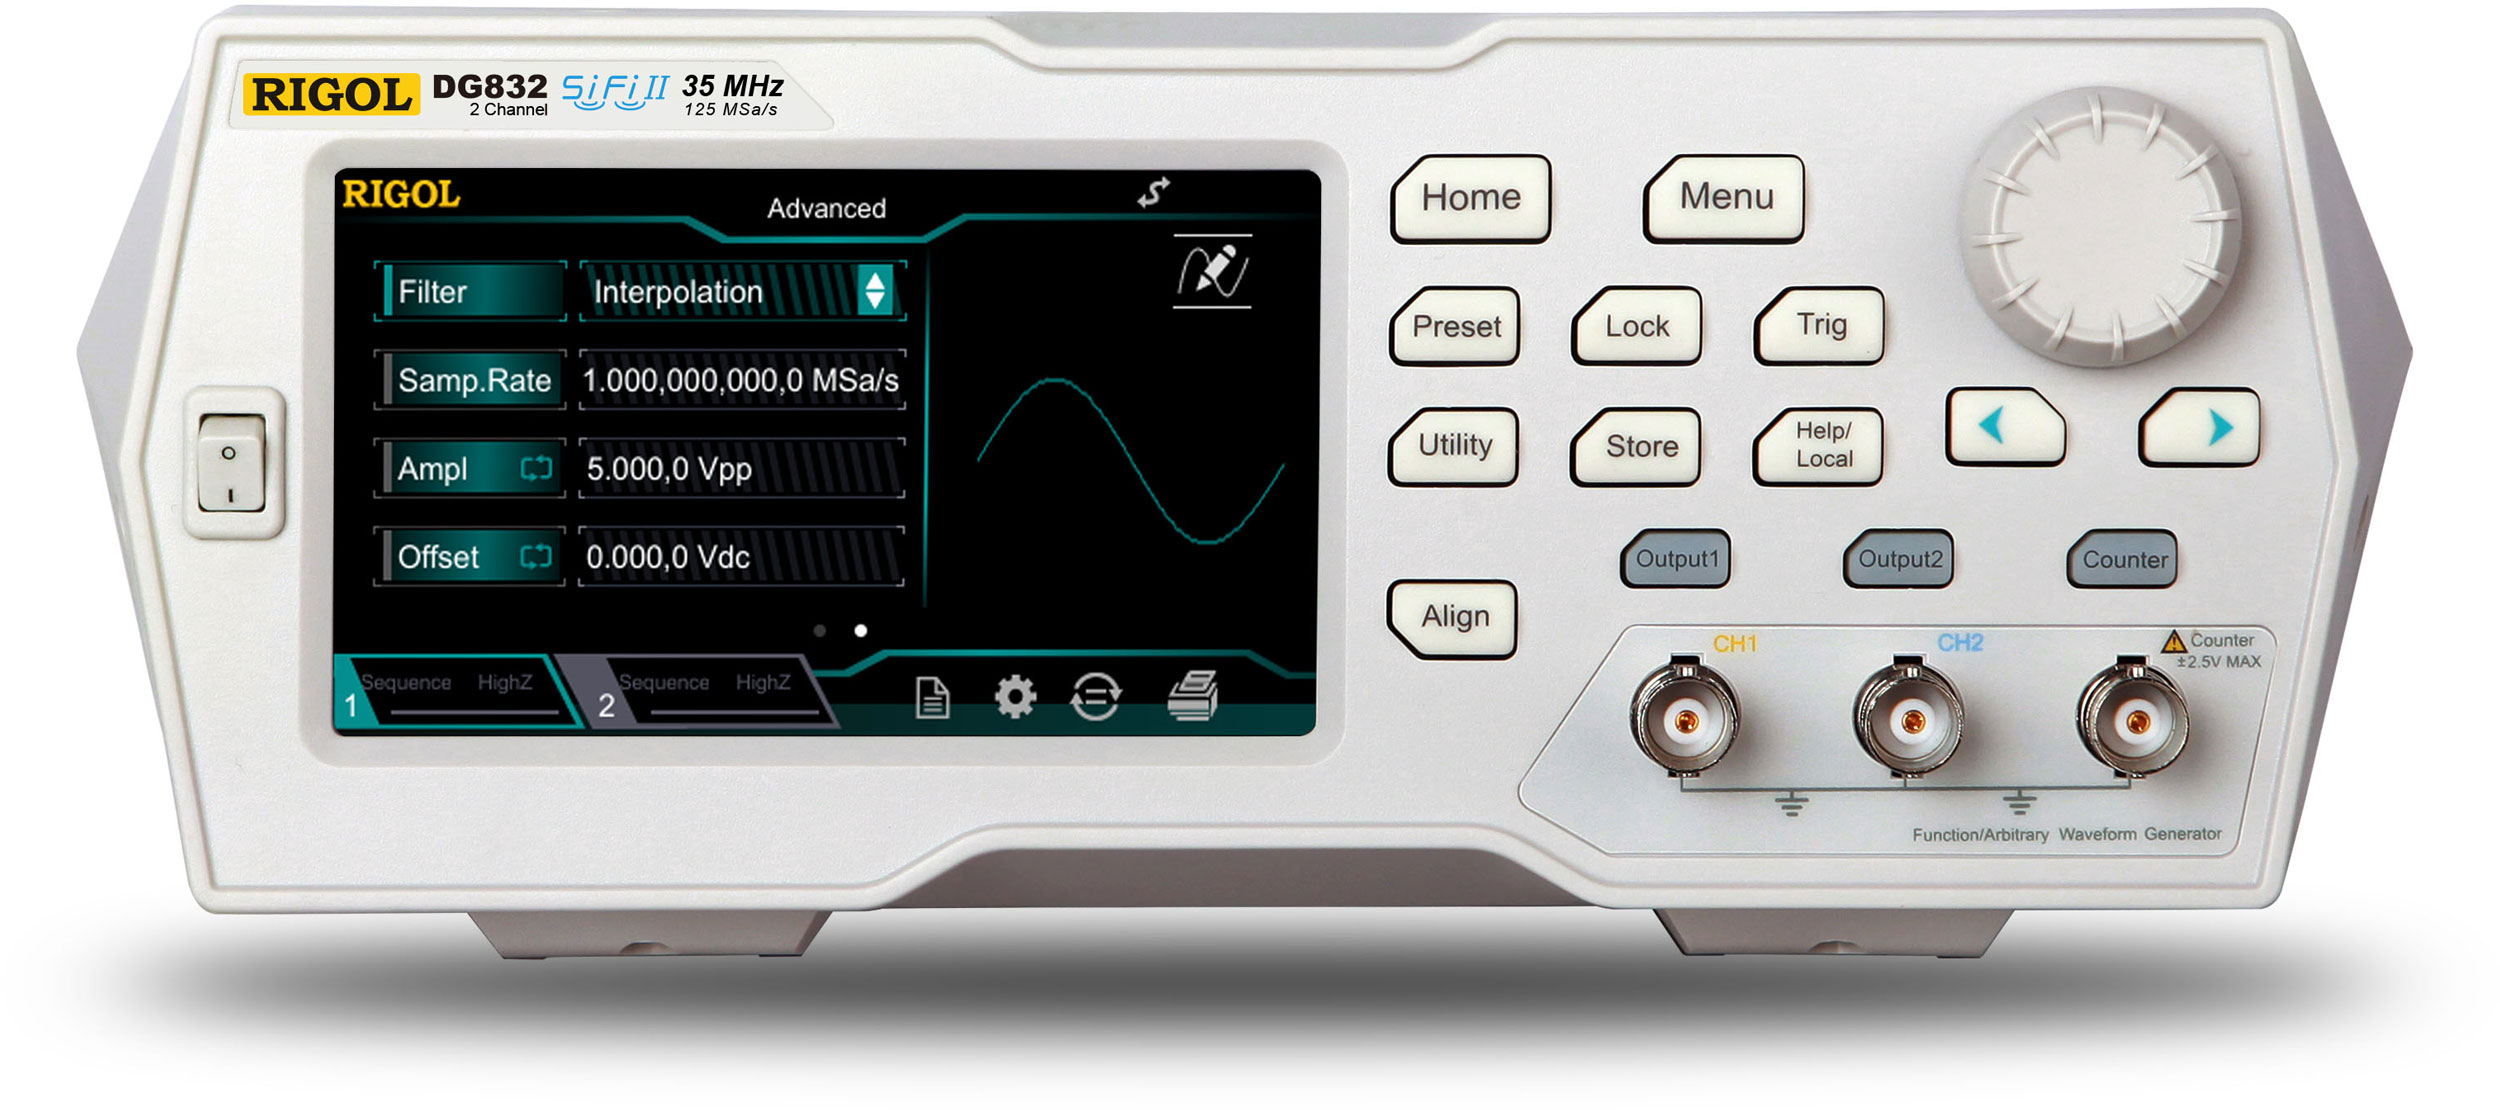 Waveform Generators Rigol Technologies Innovation Or Nothing Audio Signal Generator Freeware Dg800